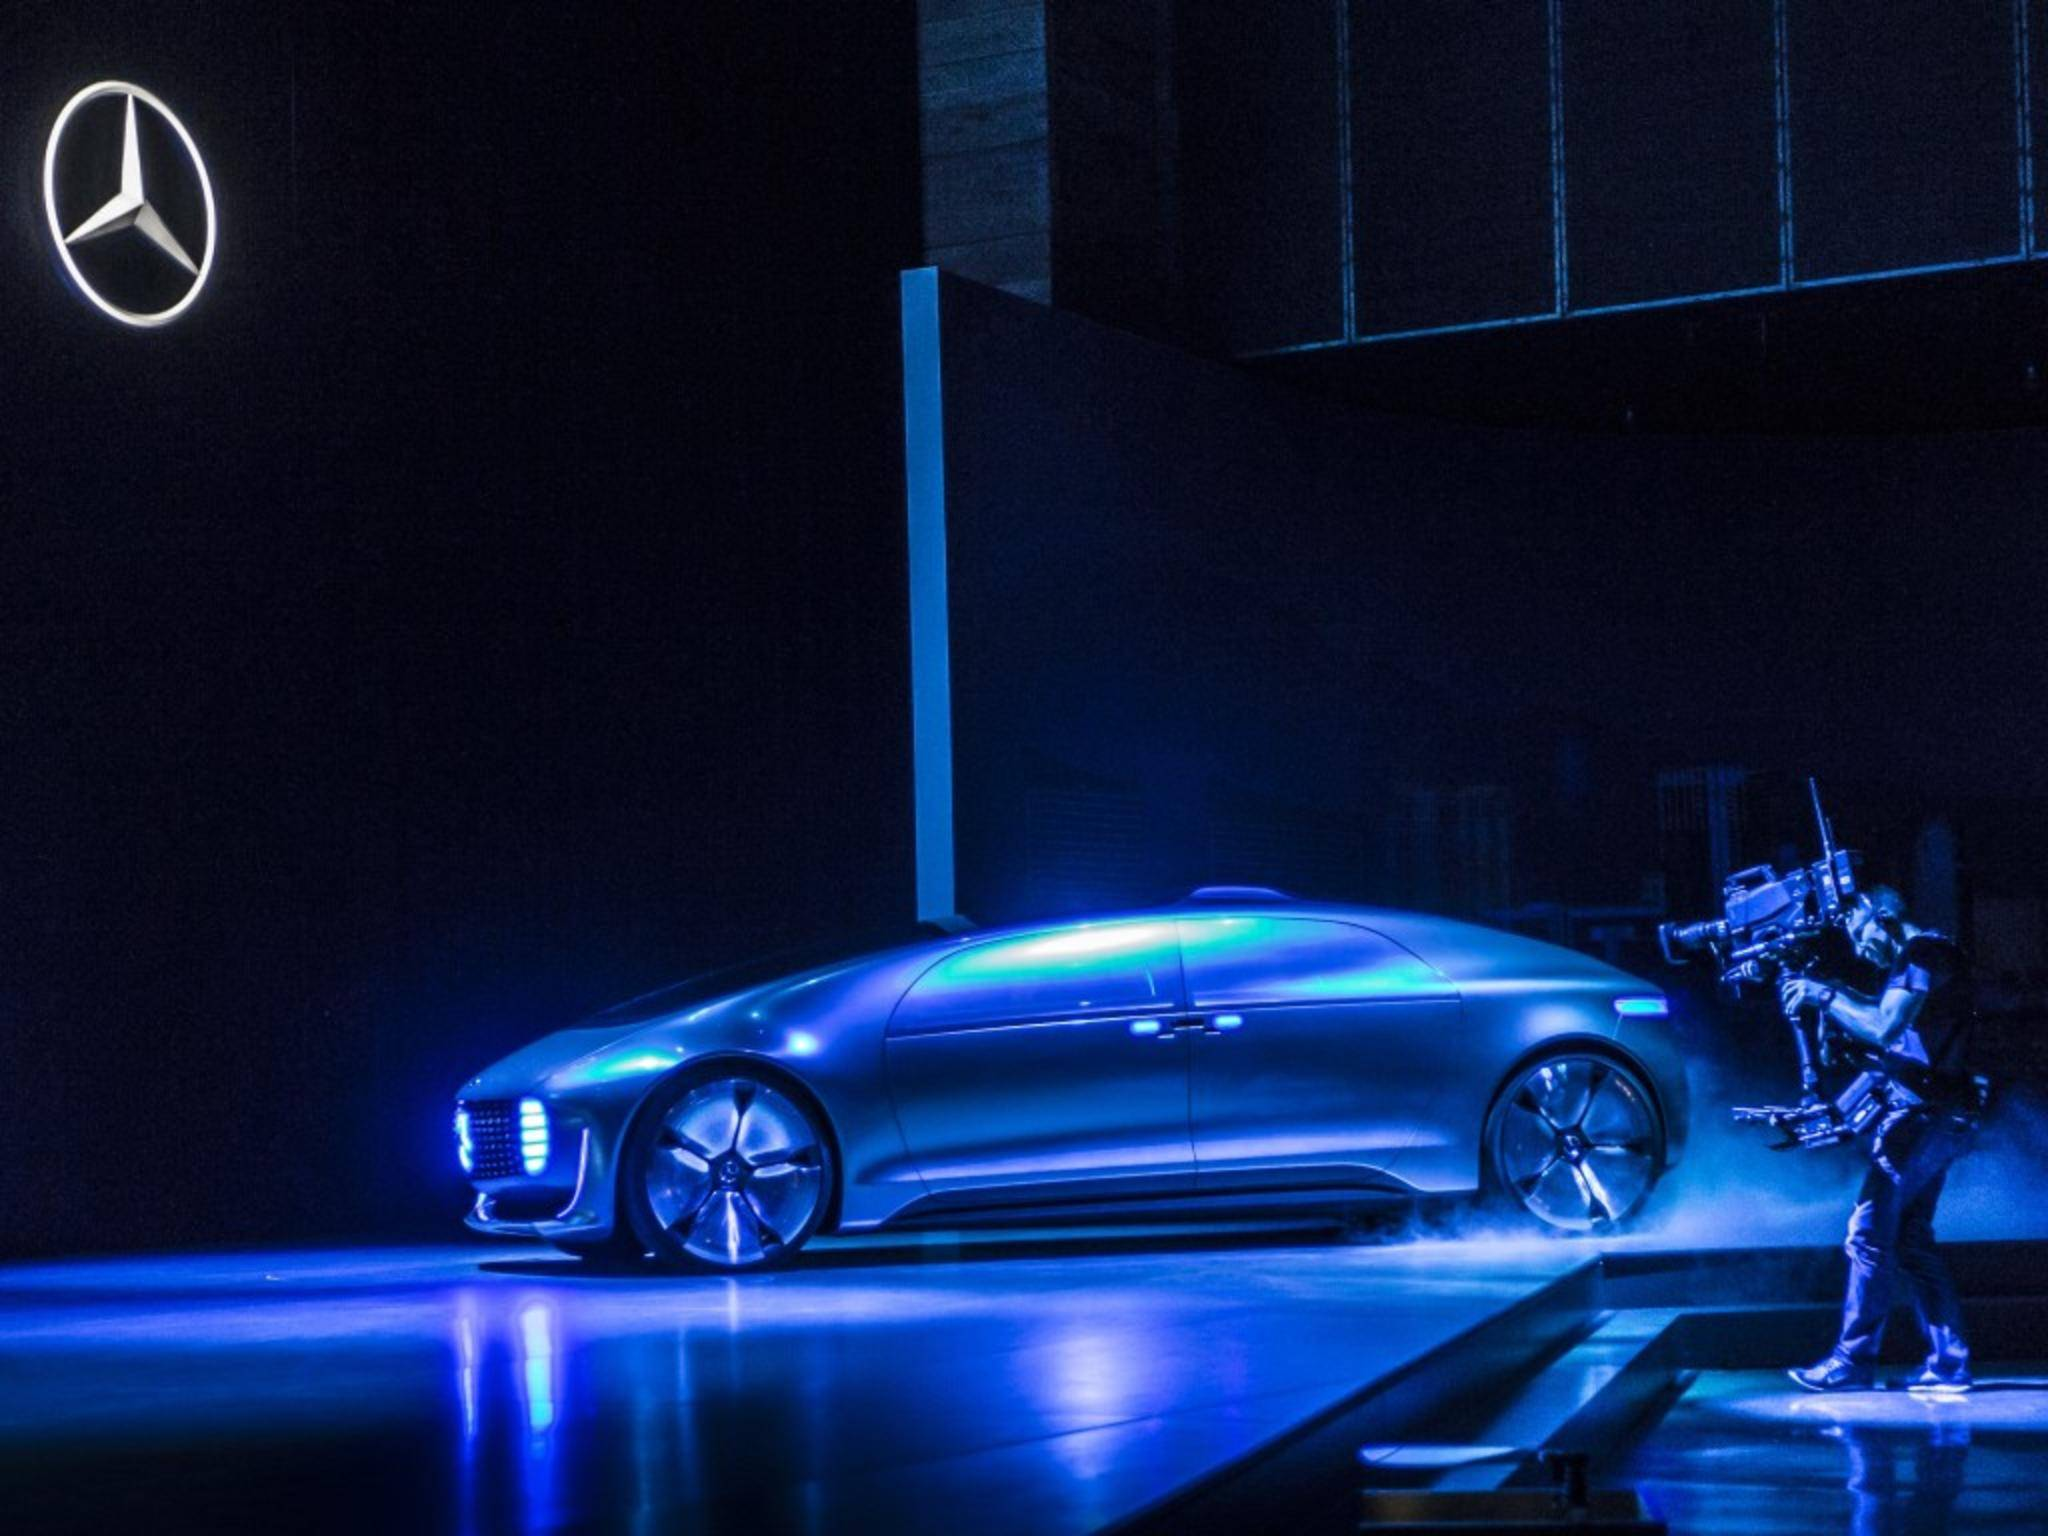 Mercedes zeigt auf der CES den F 015 Luxury in Motion.